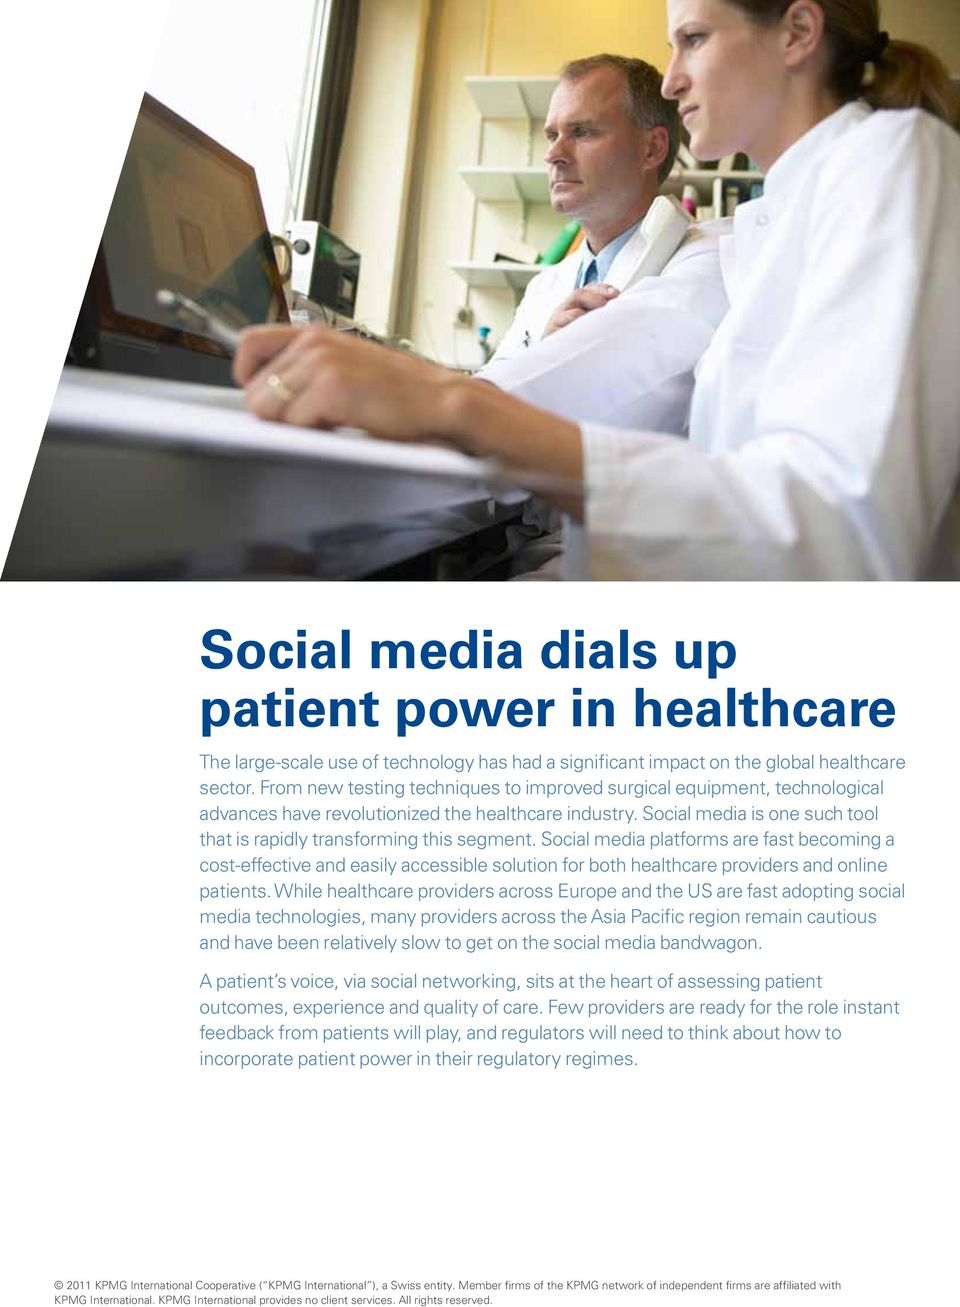 Social media platforms are fast becoming a cost-effective and easily accessible solution for both healthcare providers and online patients.